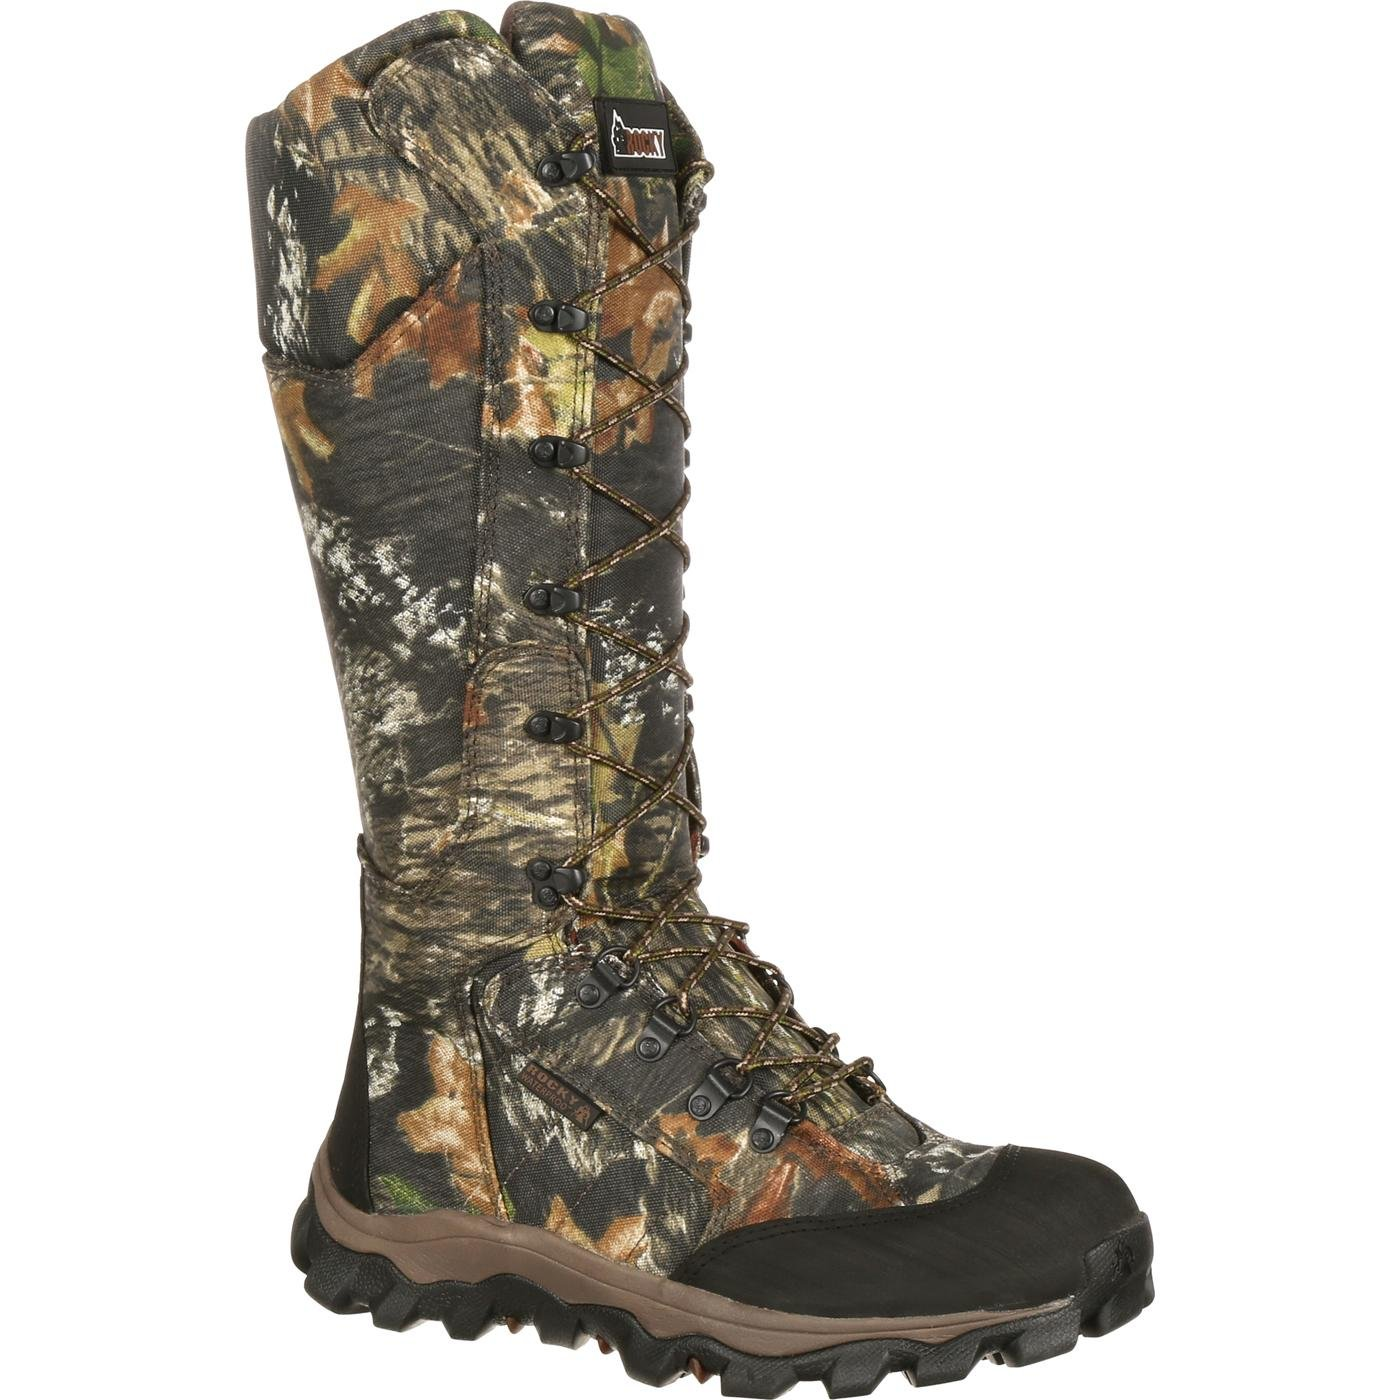 ROCKY Men's Lynx Snake Boot-M, Mobu, 9.5 M US by ROCKY